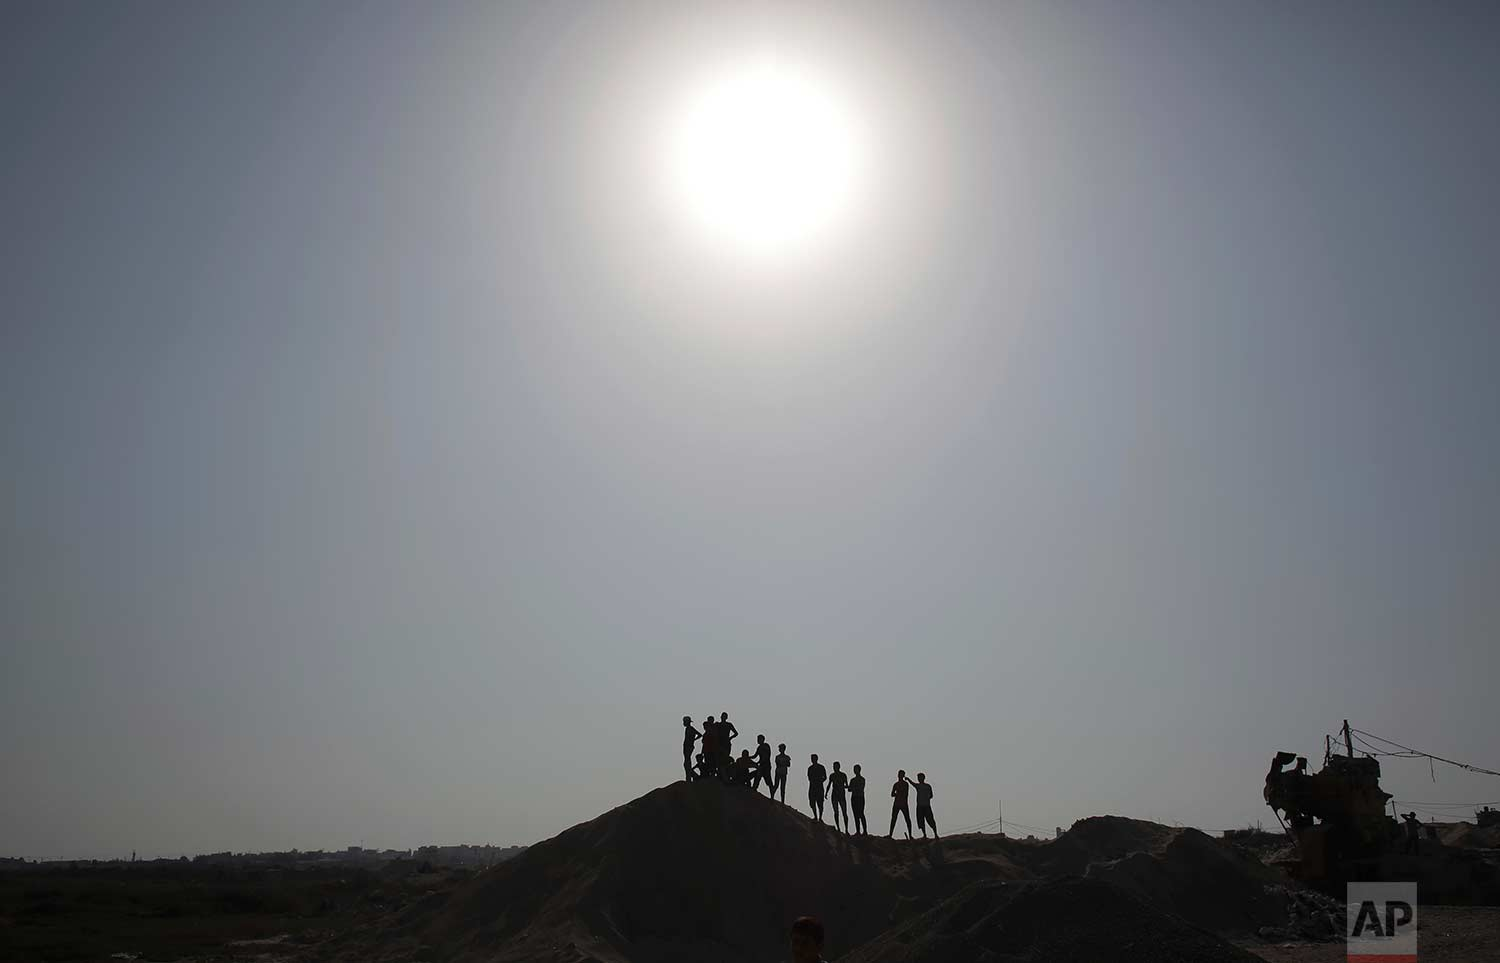 Palestinian protesters stand atop a sandy hill during clashes with Israeli soldiers on the Israeli border with Gaza, Friday, July 21, 2017. (AP Photo/ Khalil Hamra)